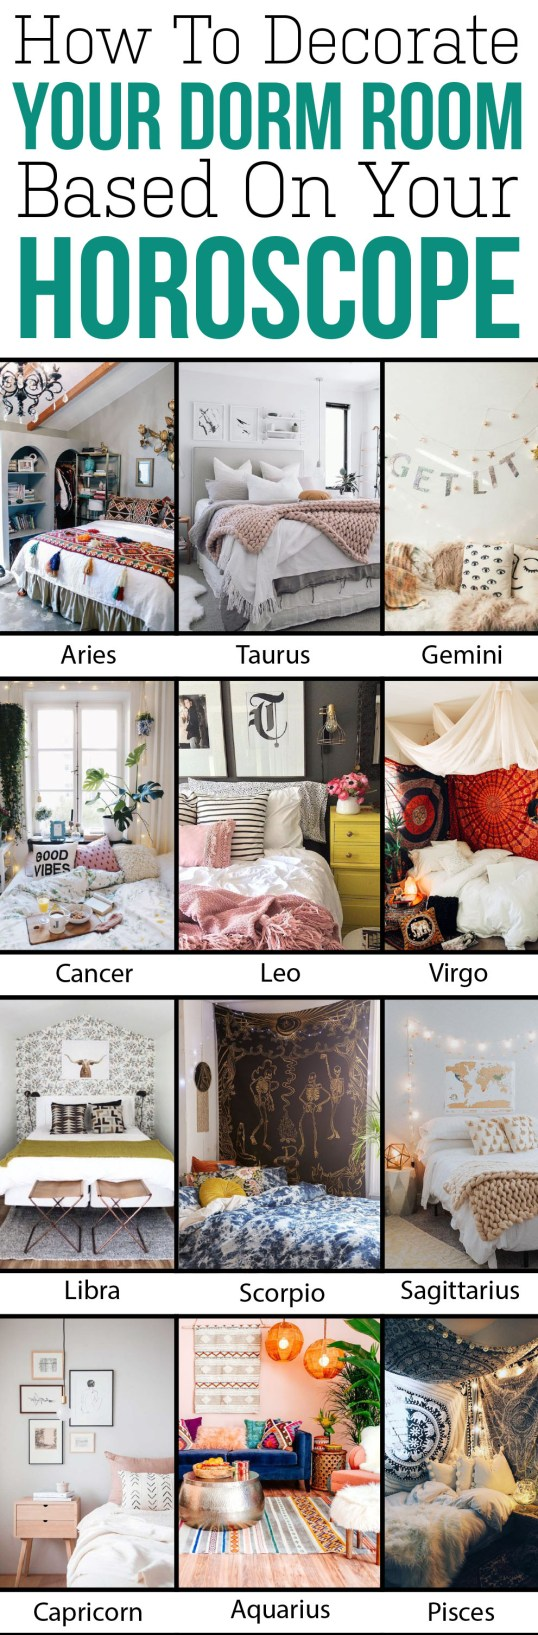 How To Decorate Your Dorm Based On Your Horoscope